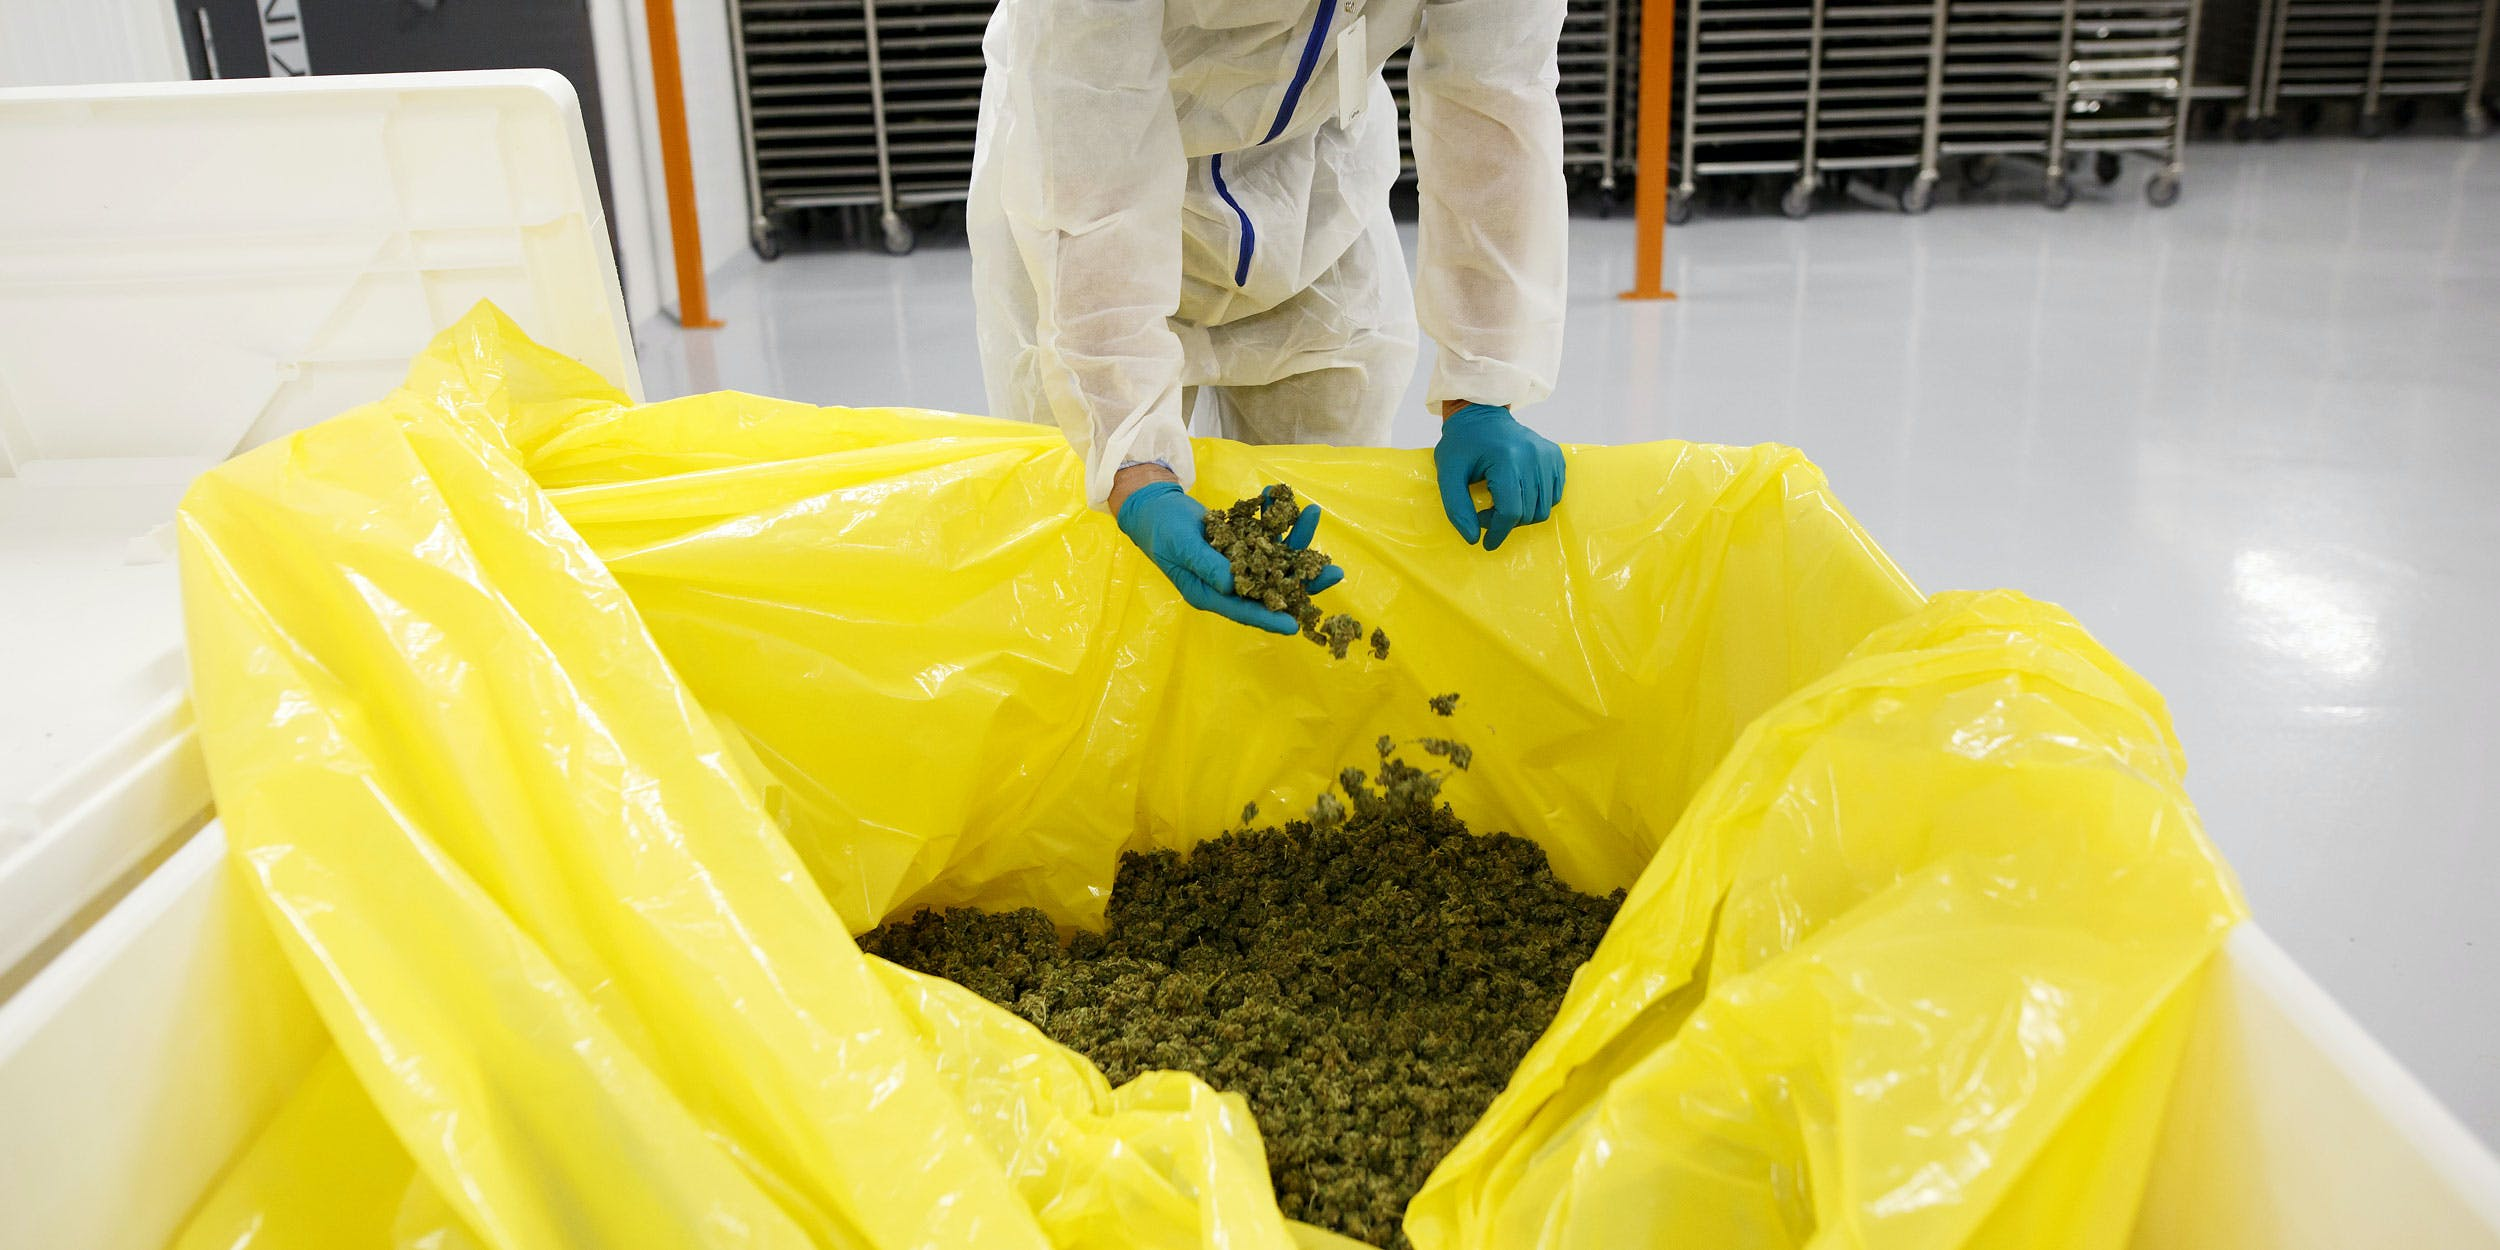 Michael Ravensdale, vice-president of production and quality at CannTrust Holdings Inc., inspects cannabis buds at the Niagara Perpetual Harvest facility in Pelham, Ontario, Canada, on Wednesday, July 11, 2018. Florida could soon be shutting down nearly half of the state's processing facilities because they failed to comply with a regulation they didn't know existed